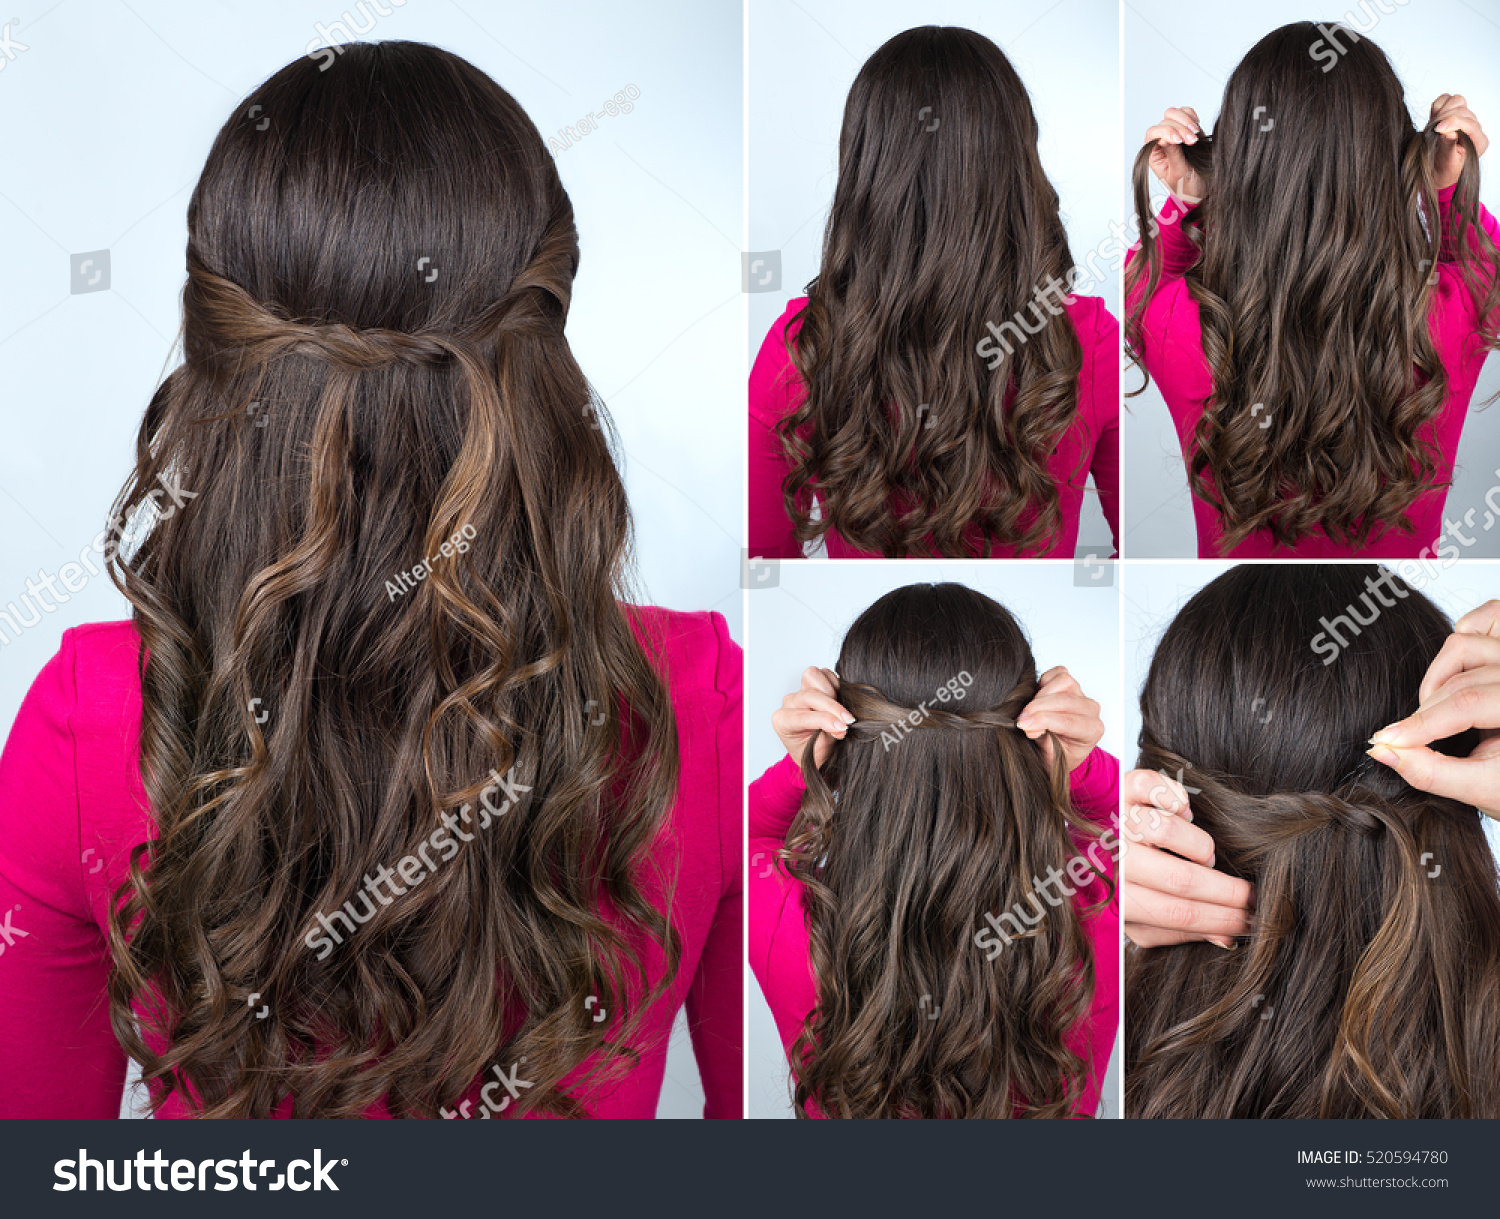 Curly hairstyles tutorials - Simple Knotted Hairstyle On Curly Hair Tutorial Hairstyle For Long Hair Hairstyle Tutorial Step